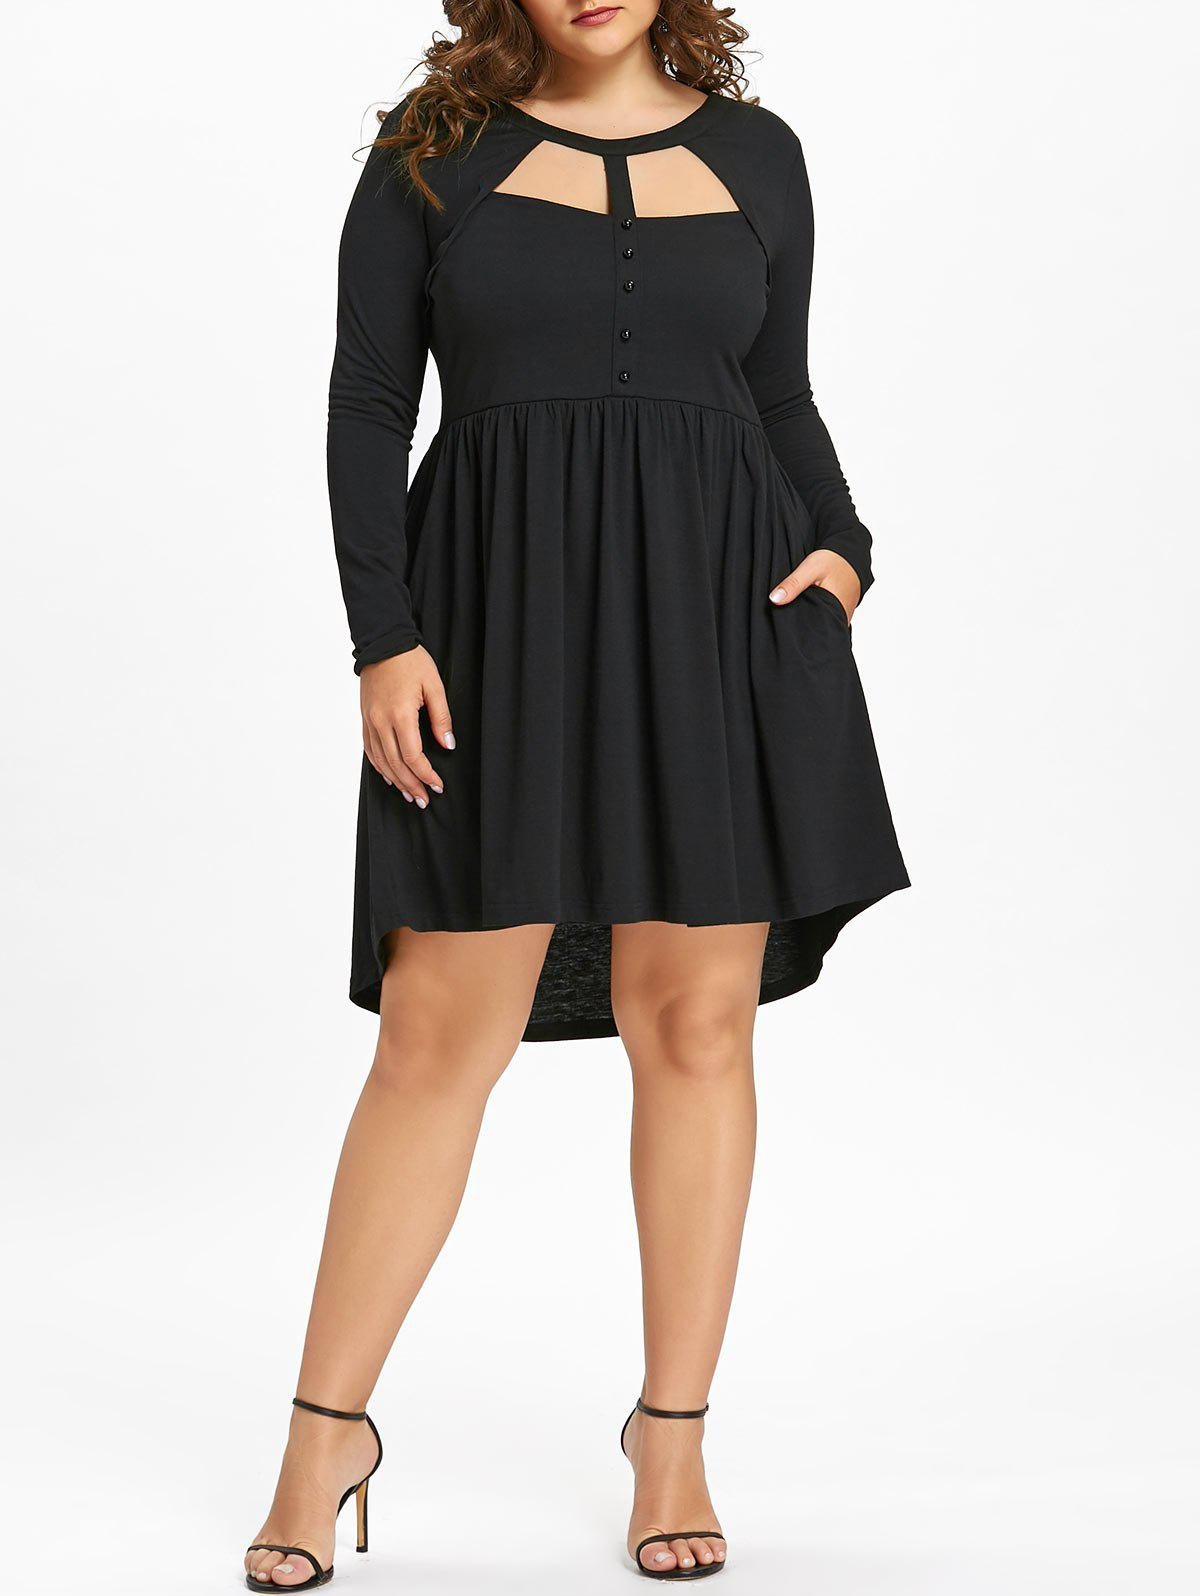 Plus Size Mesh Panel Cutout Long Sleeve Dress plus size tank dress with long mesh sheer cardigan